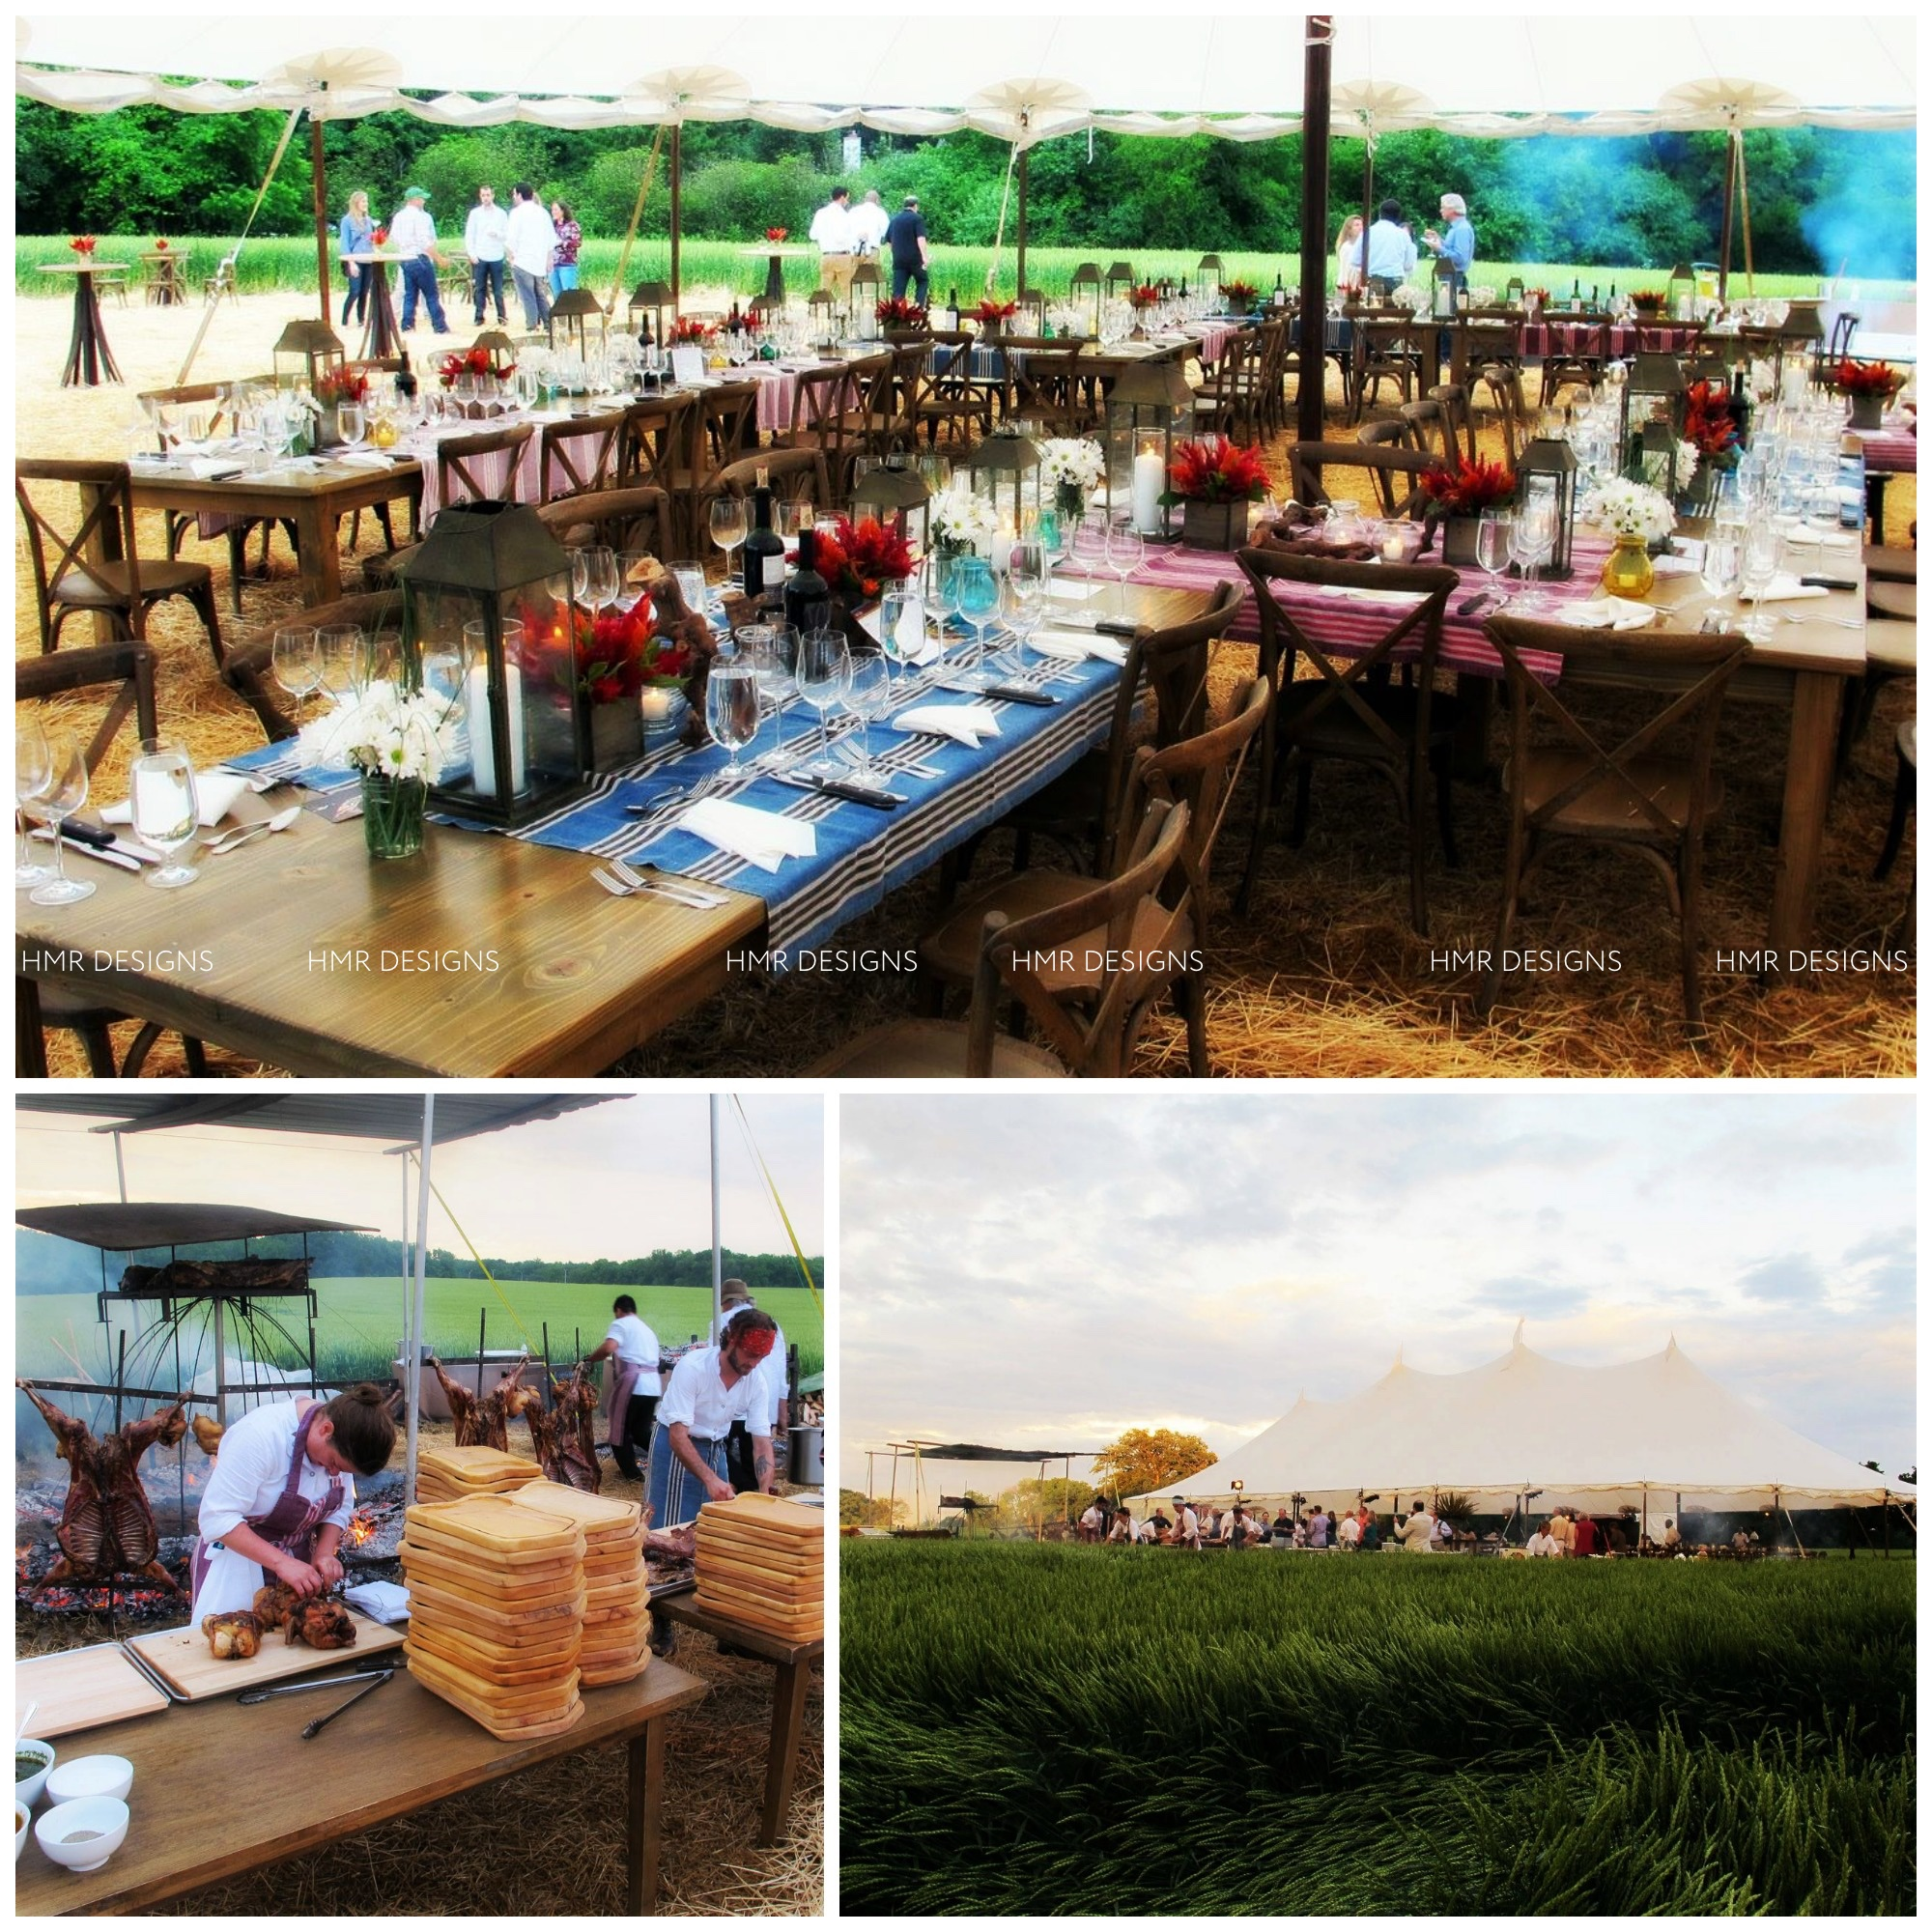 Outdoor culinary festivities with decor by HMR Designs